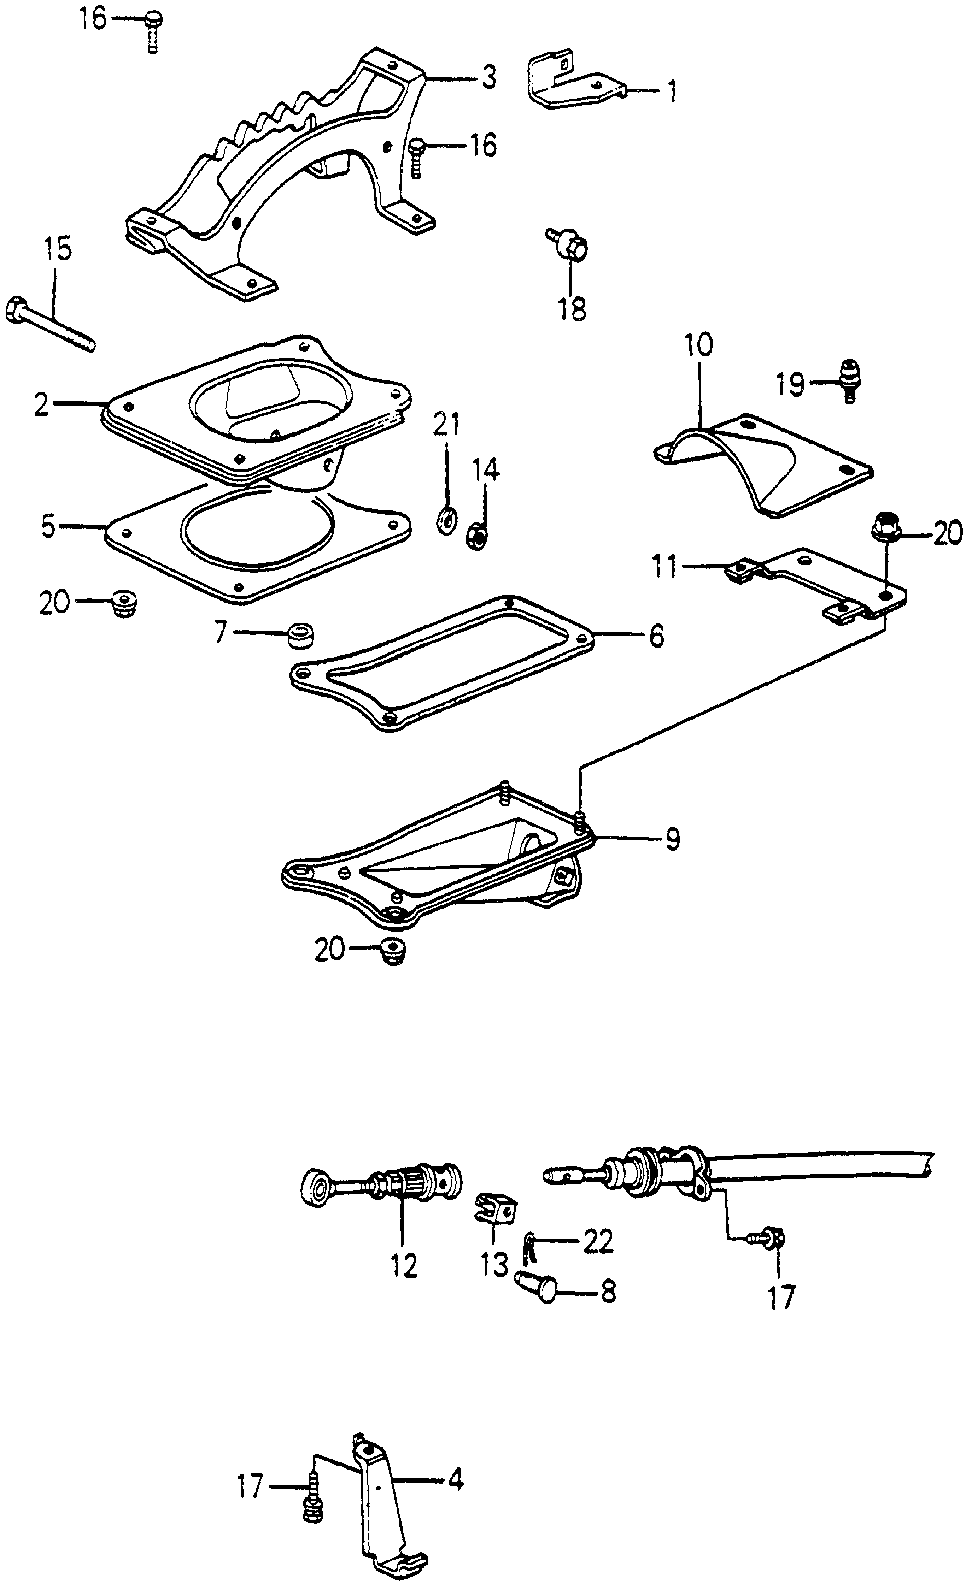 35701-SA5-010 - STAY, INHIBITER CONNECTOR